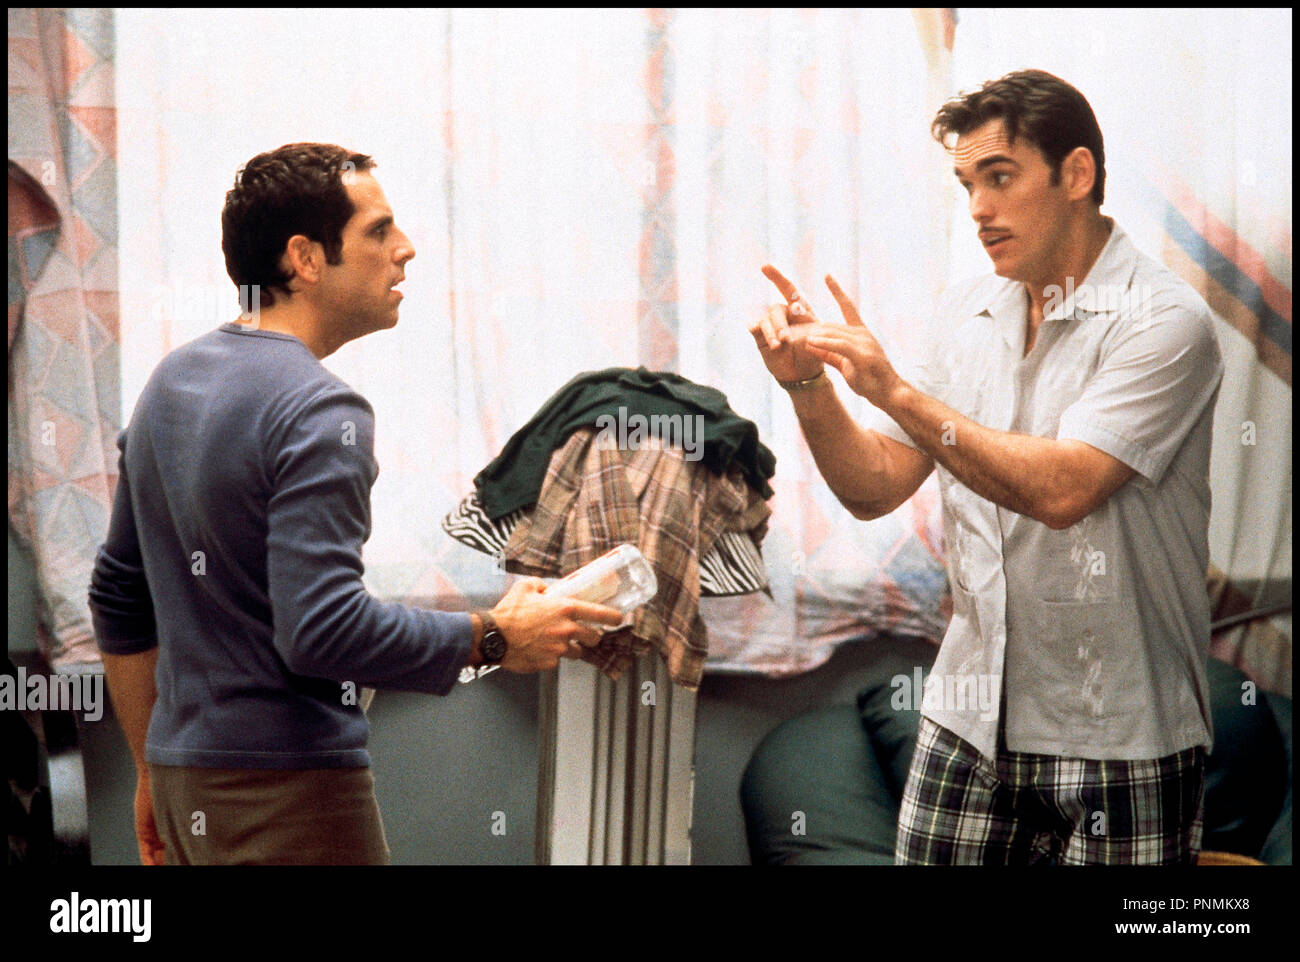 Prod DB © 20 th Century Fox /DR MARY A TOUT PRIX (THERE'S SOMETHING ABOUT MARY) de Bobby Farrelly et Peter Farrelly 1998 USA avec Ben Stiller et Matt Dillon - Stock Image